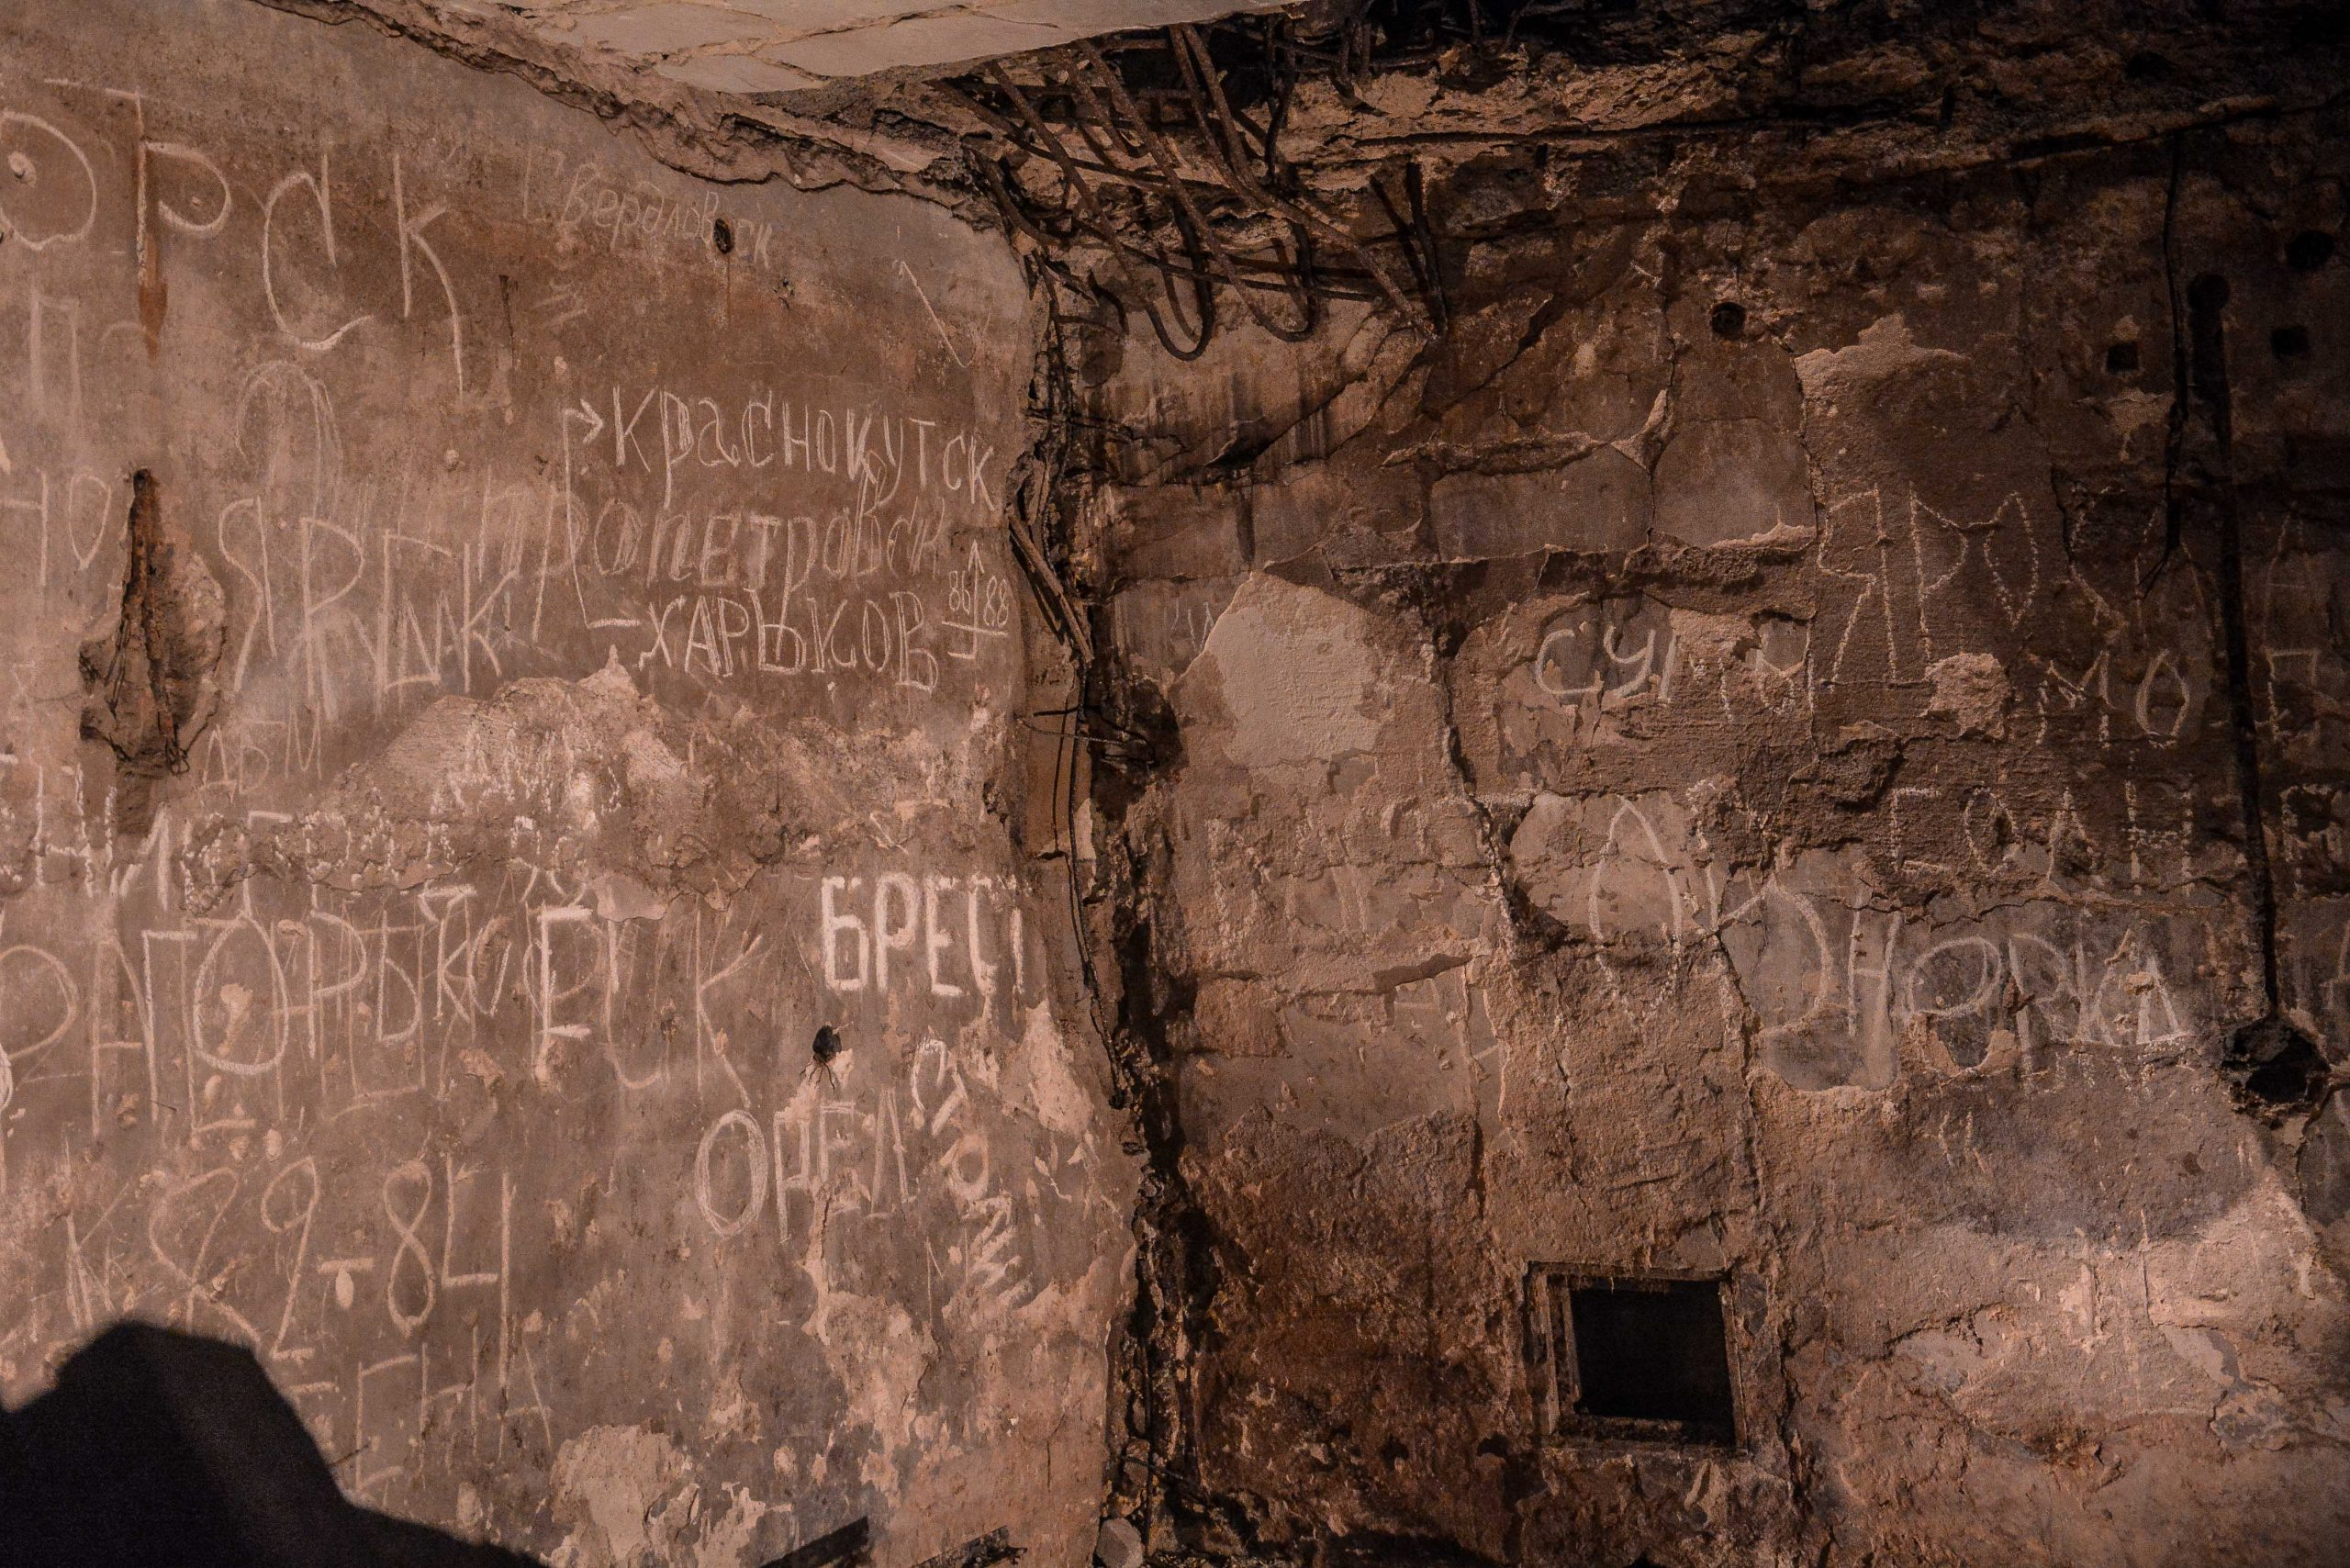 wall soviet name etchings bunker zeppelin amt 500 maybach bunker ranet wehrmacht sowjet soviet military zossen brandenburg germany lost palces urbex abandoned